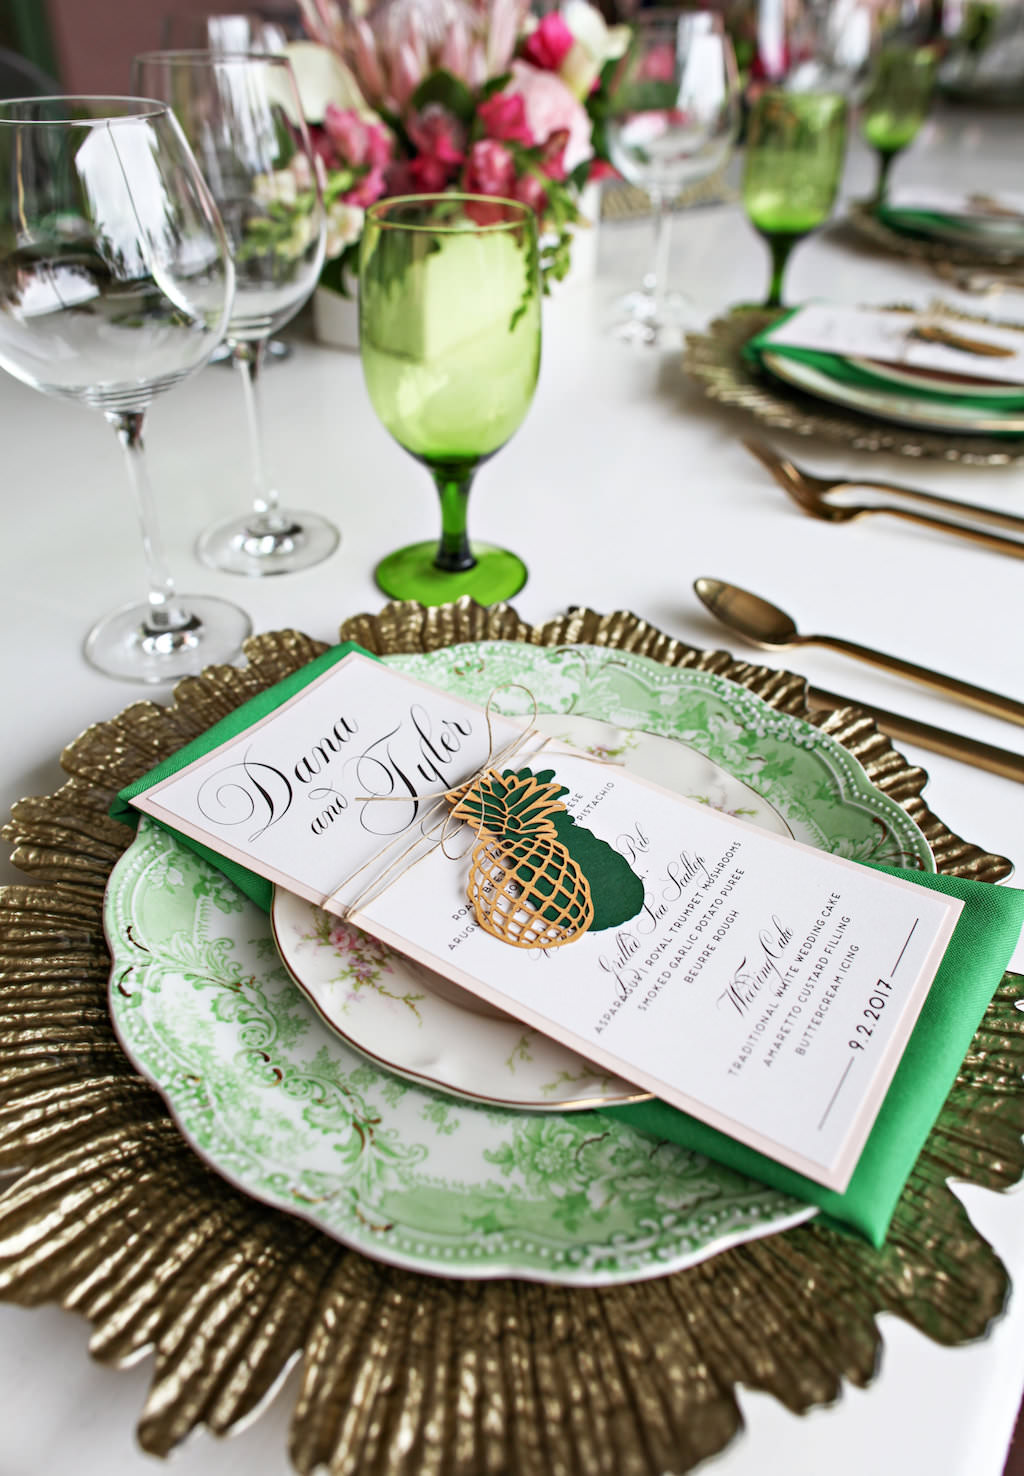 Old World Havana Tropical Inspired Wedding Reception Table Setting with Gold Charger, Vintage China Plates, Brushed Gold Flatware, Green Satin Linens and Laser-cut Pineapple Menu with Twine, and Colored Drinking Glasses   Tampa Bay Wedding Rentals A Chair Affair